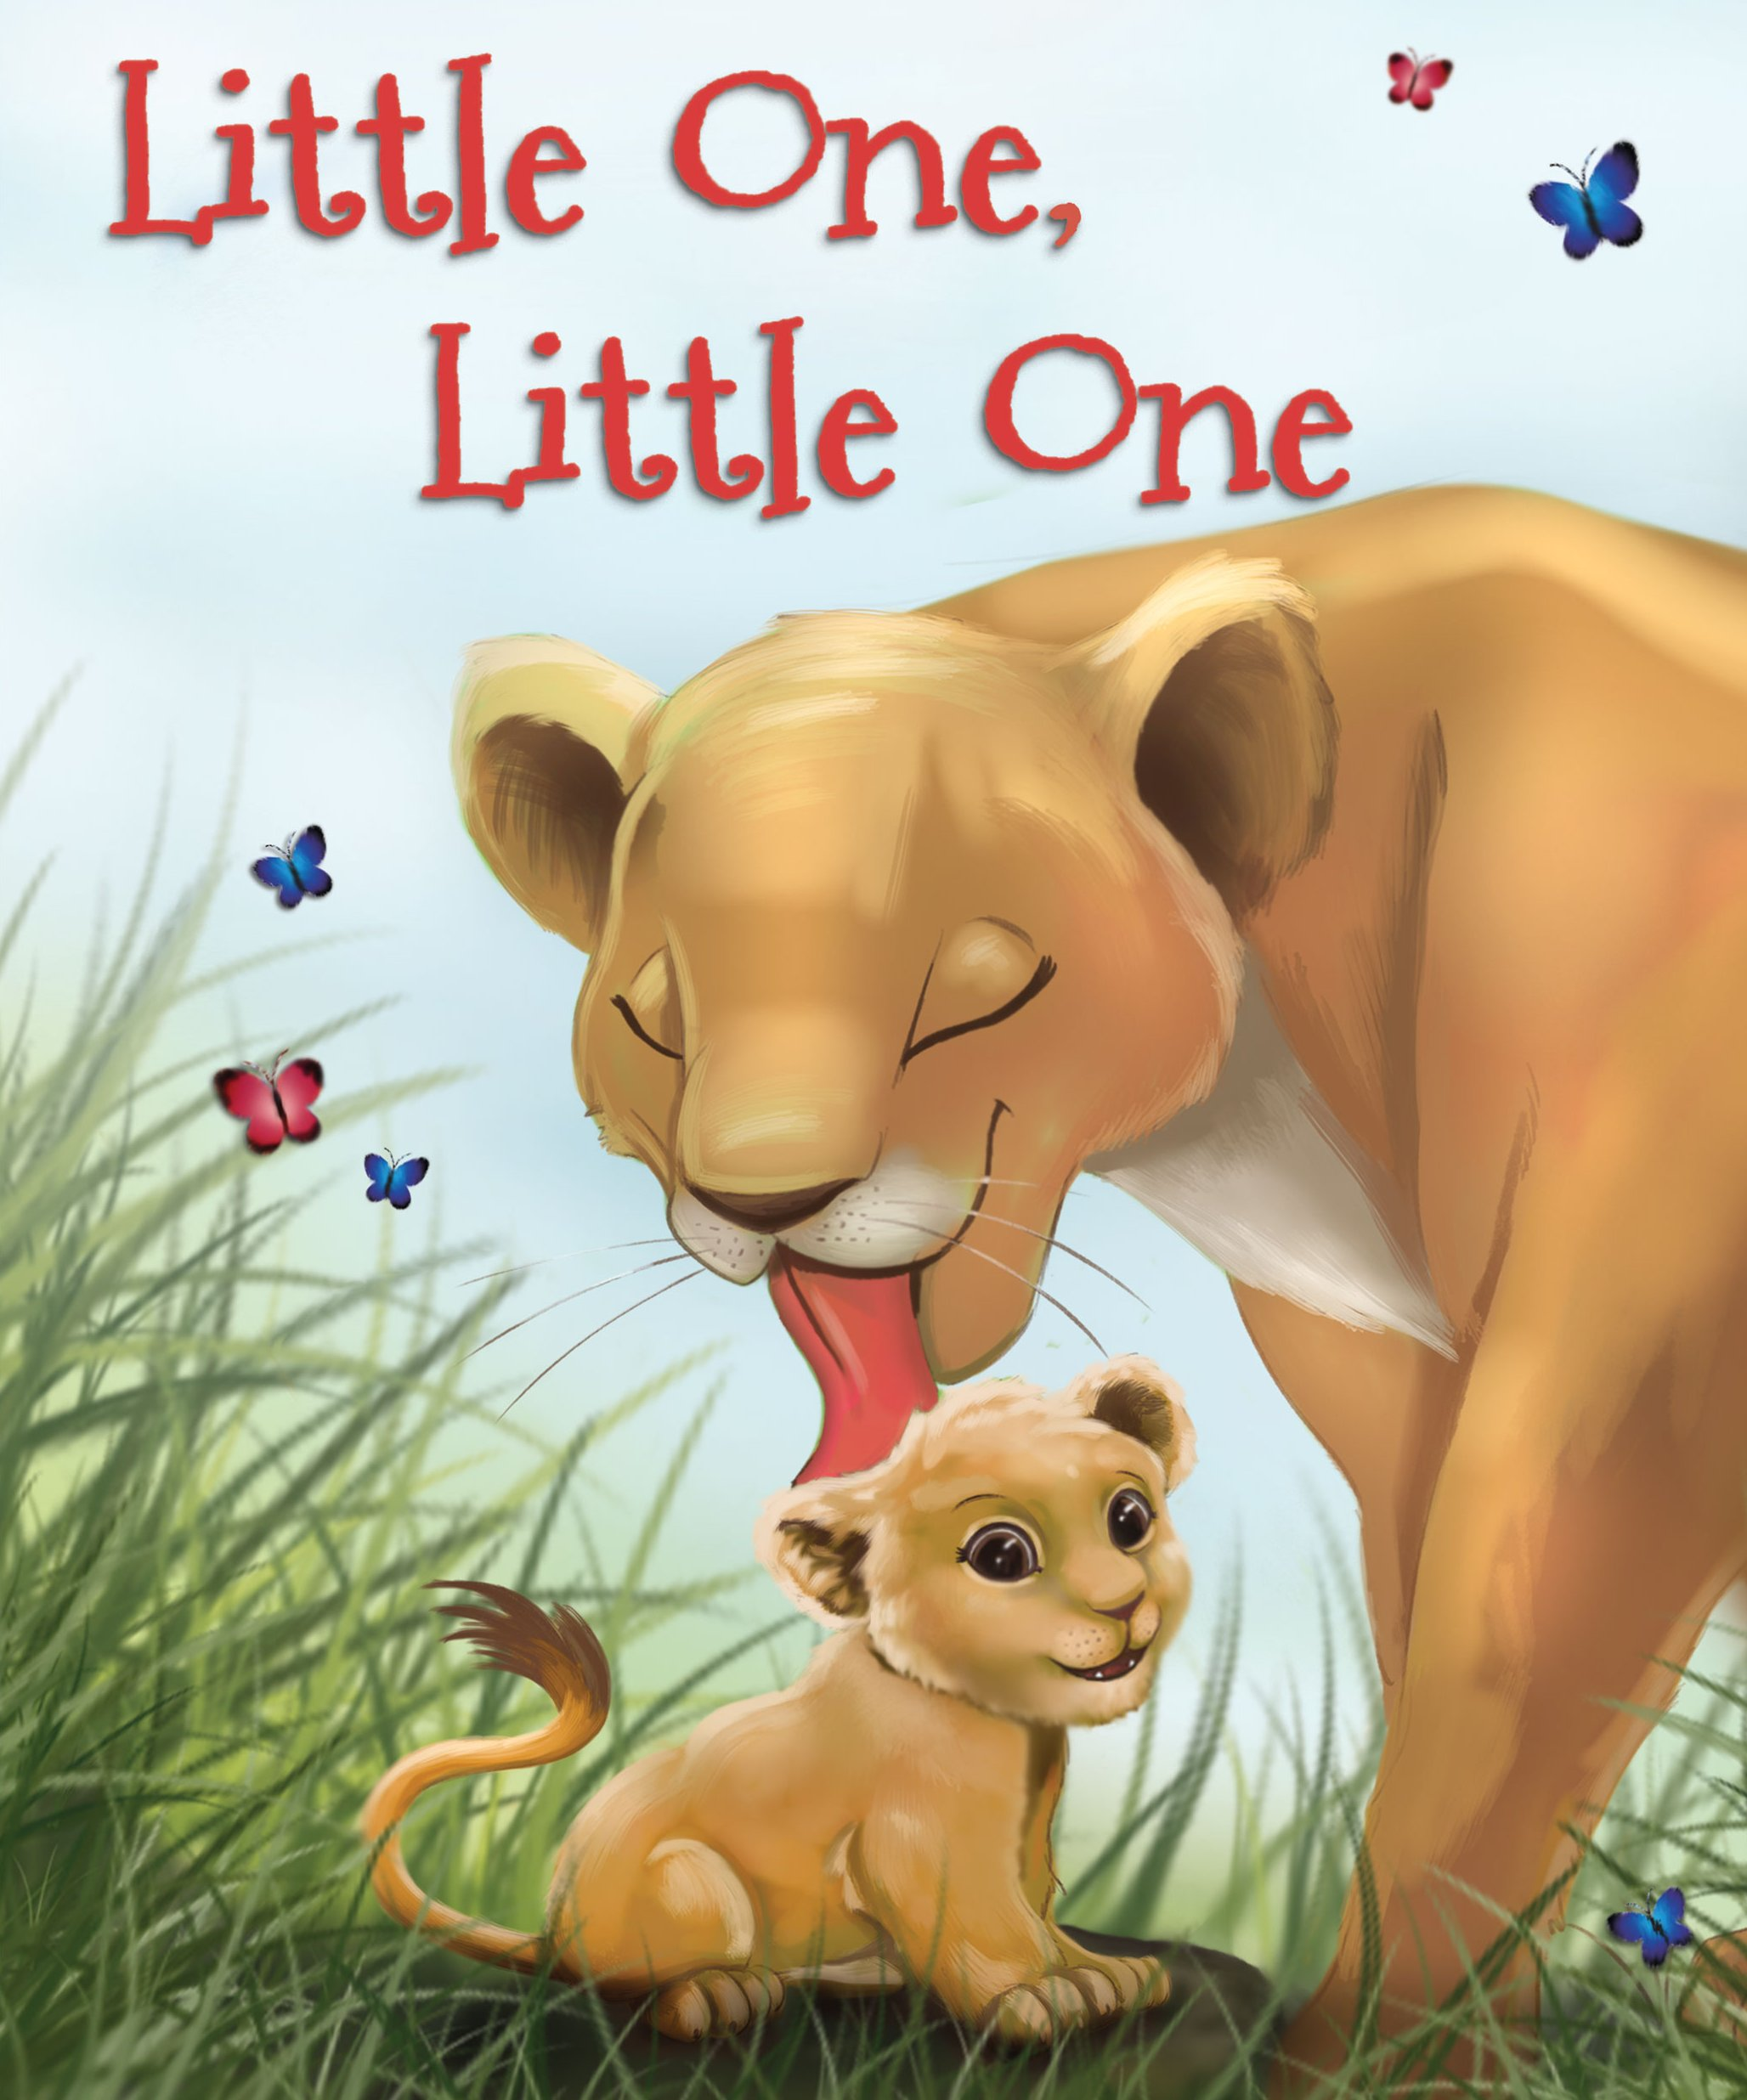 Little One, Little One, counting rhyming book for preschoolers and baby